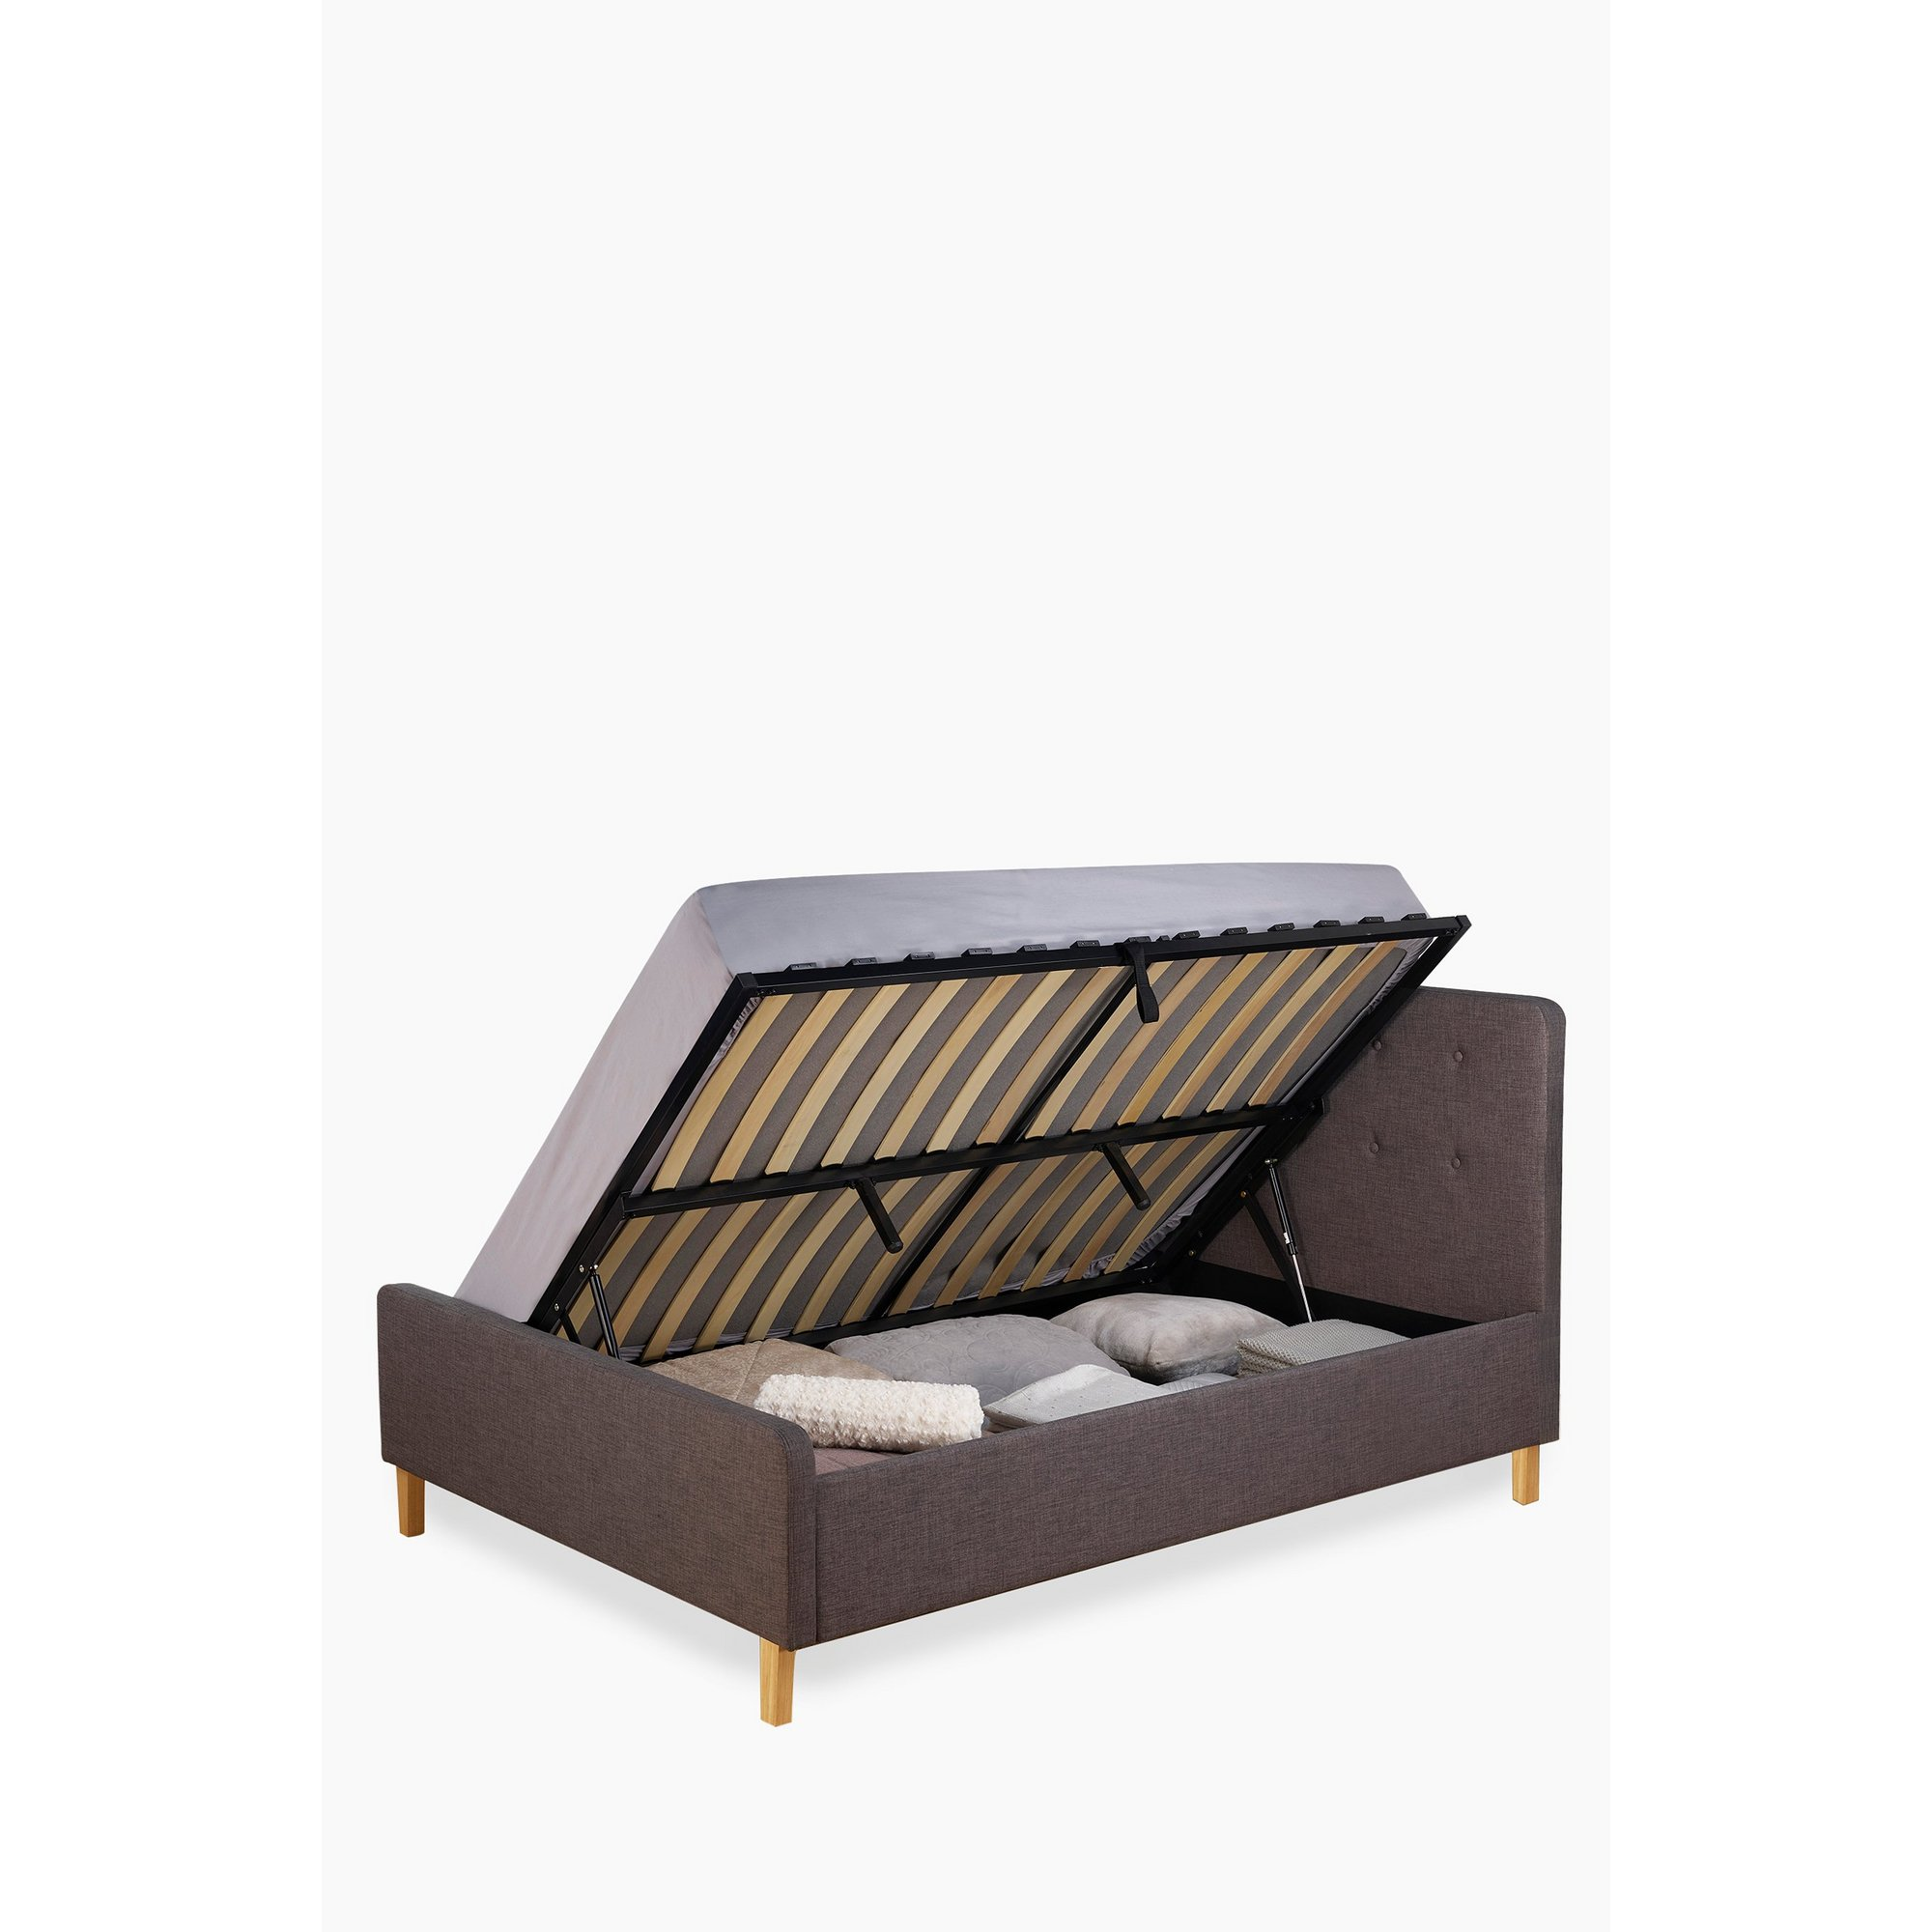 Image of Ashbourne Ottoman Bed without Mattress